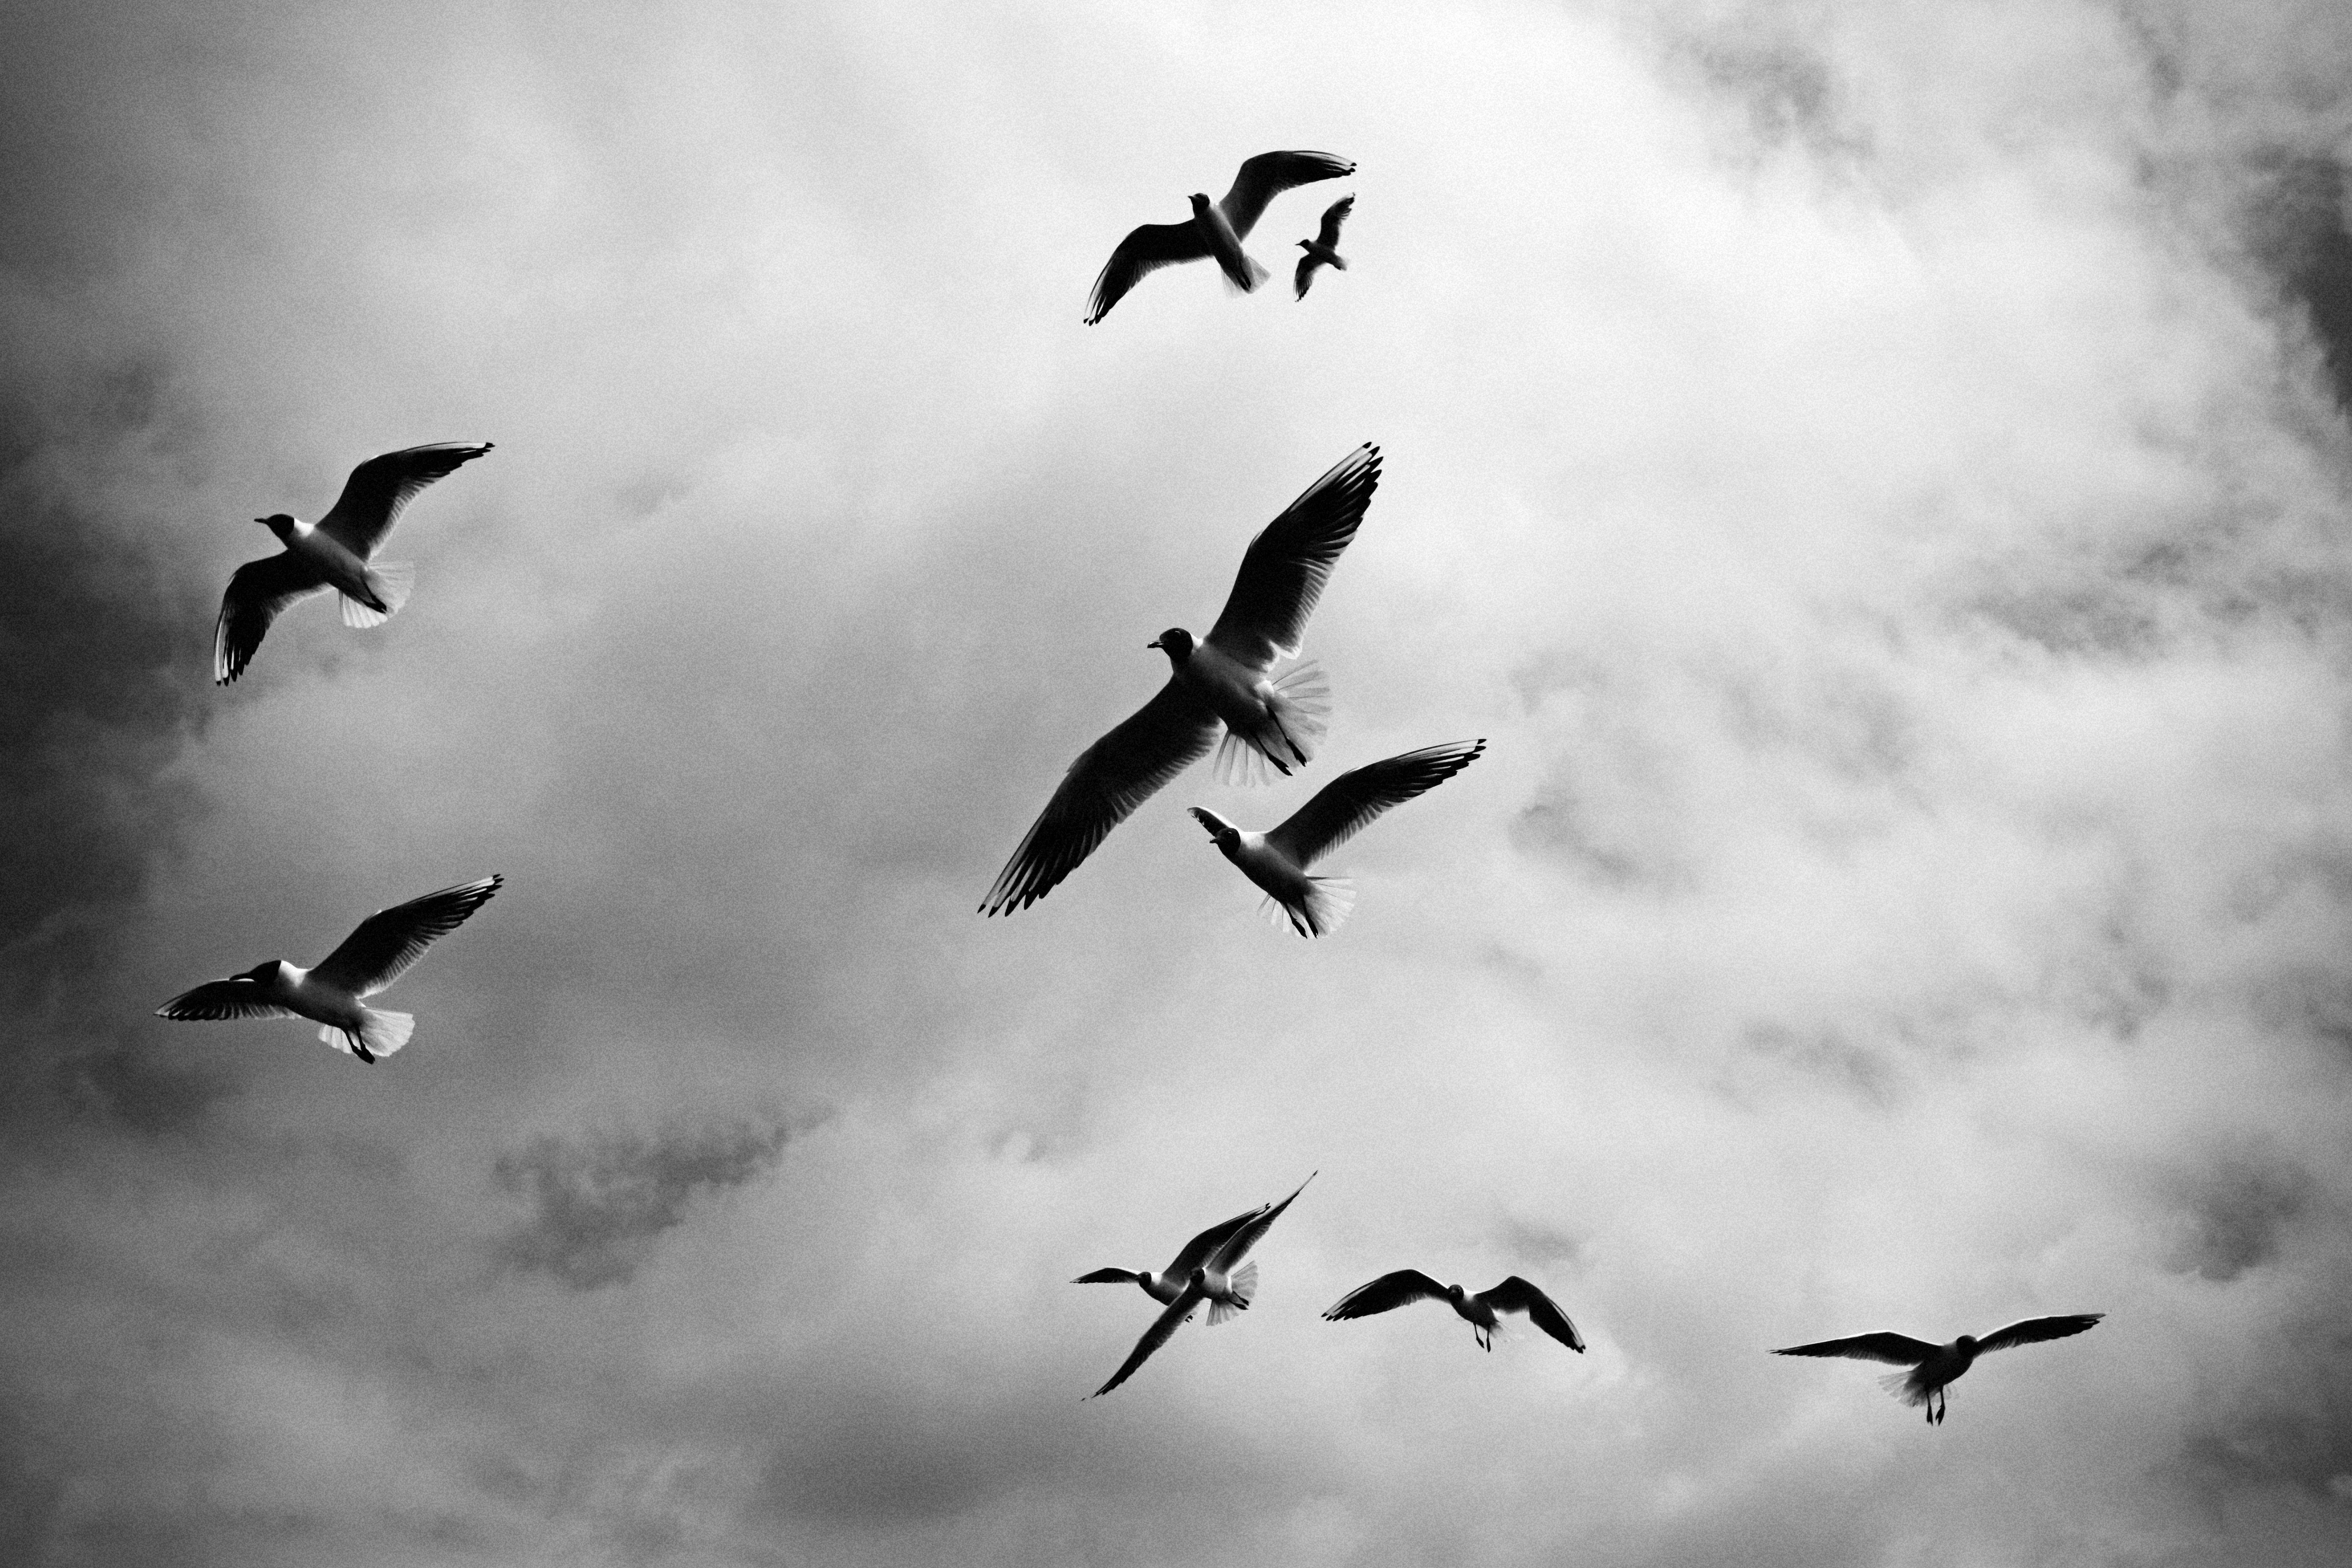 Flying Birds, Birds, Cloud, Cloudy, Fly, HQ Photo